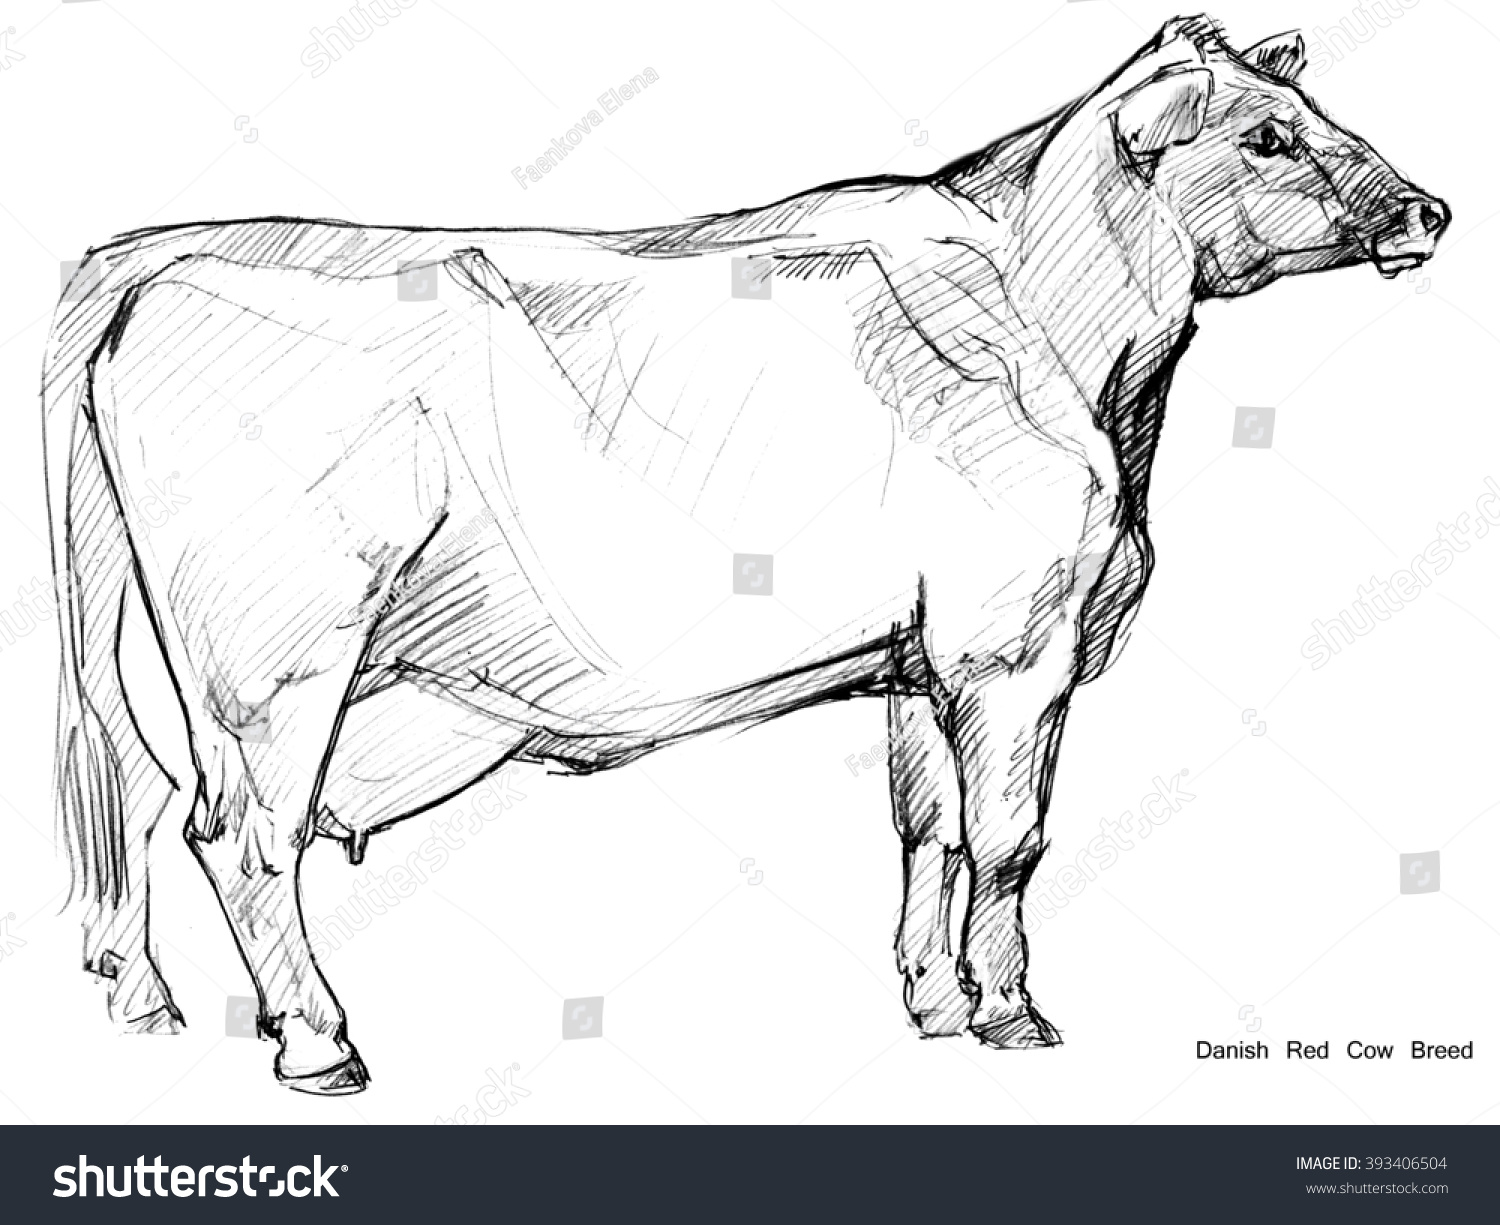 Dairy cow pencil sketch danish red stock illustration 393406504